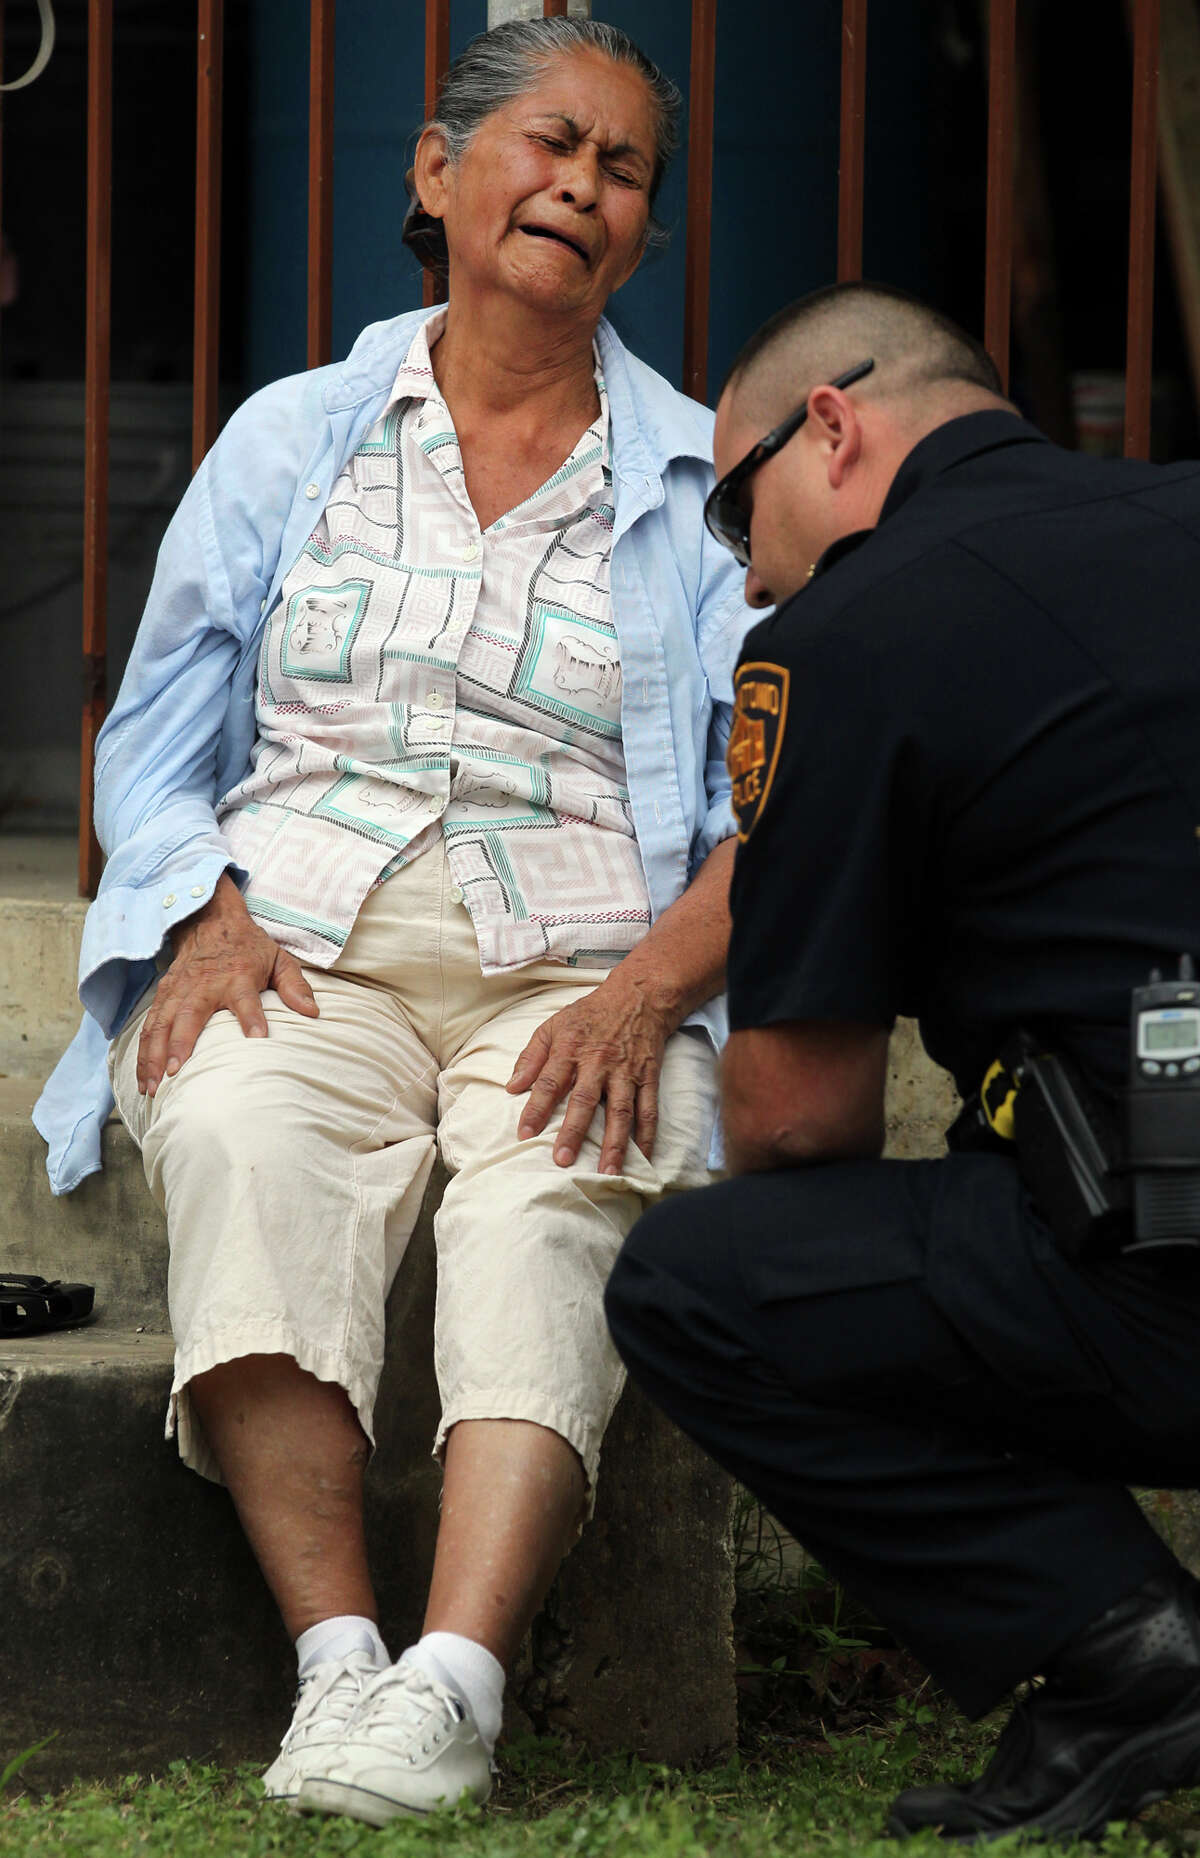 A San Antonio police officer consoles a woman described by police as the common law wife of a man who was fatally wounded Monday April 16, 2012 at 5600 block of South Flores while he cutting down foliage with a power tool that cuts with a circular steel blade. The 83-year-old man died at the scene after San Antonio firefighters tried to save him.